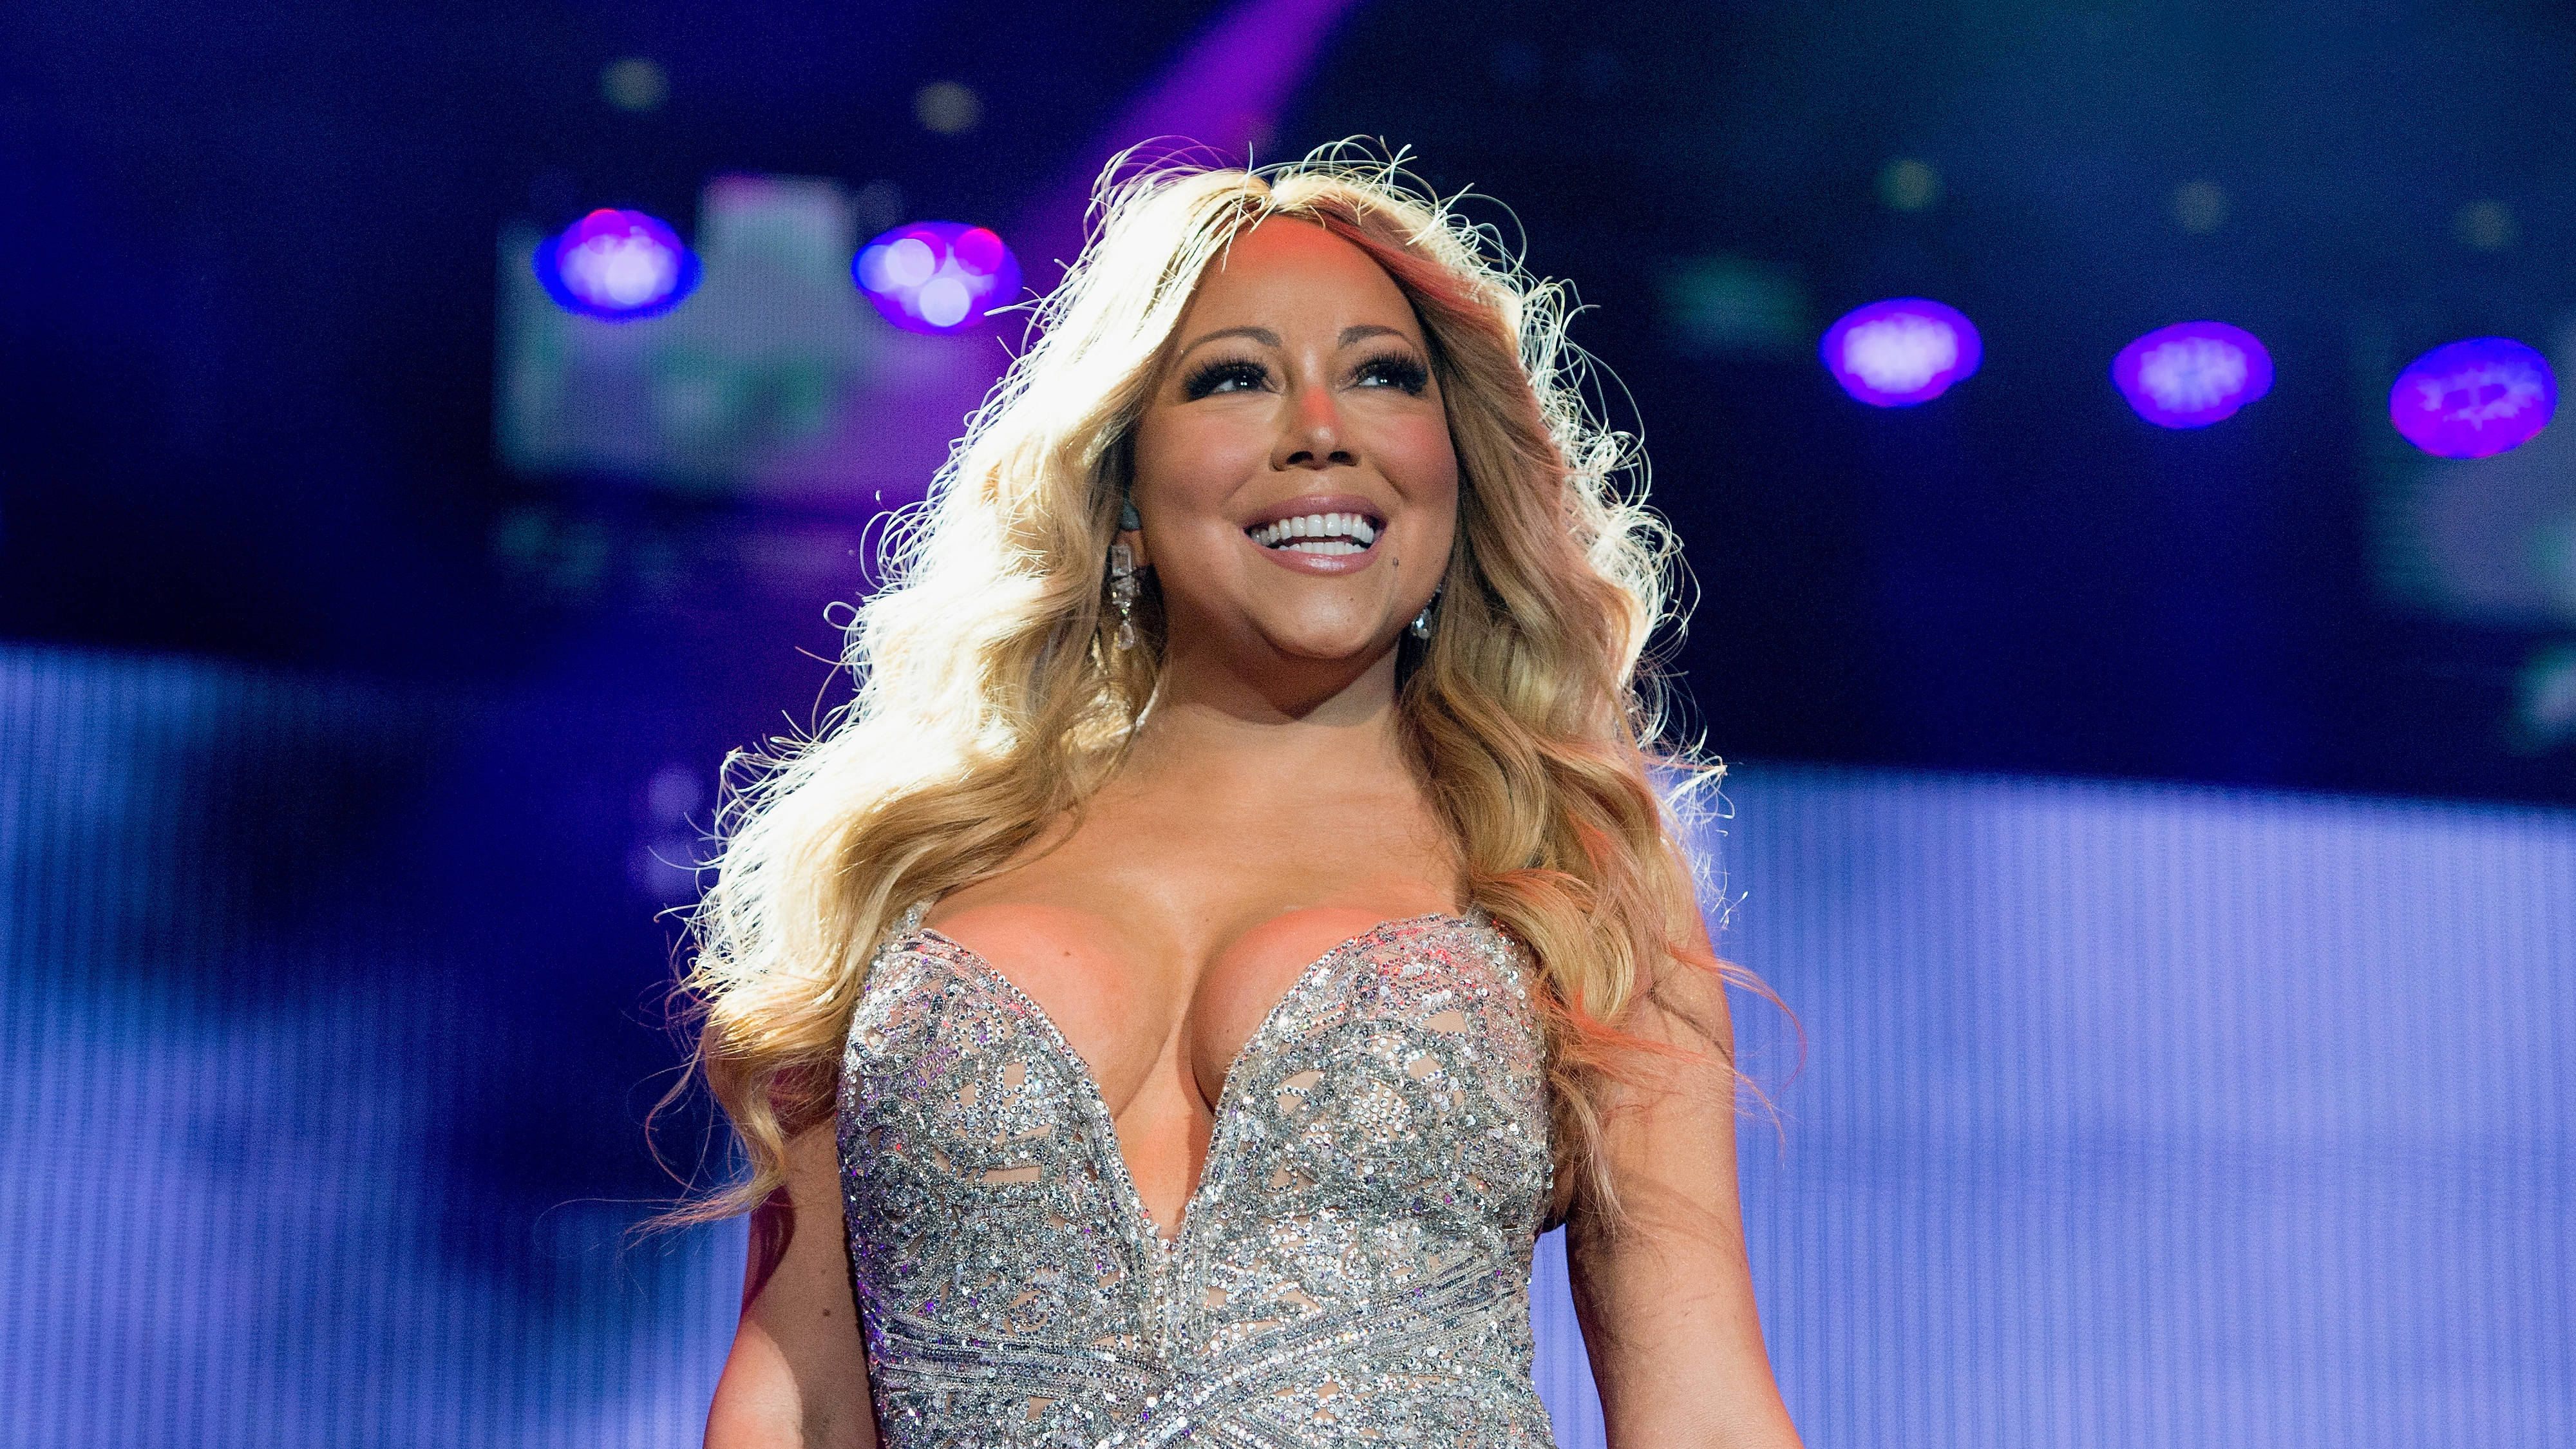 Mariah Carey's 10 best songs of all time, ranked - Smooth